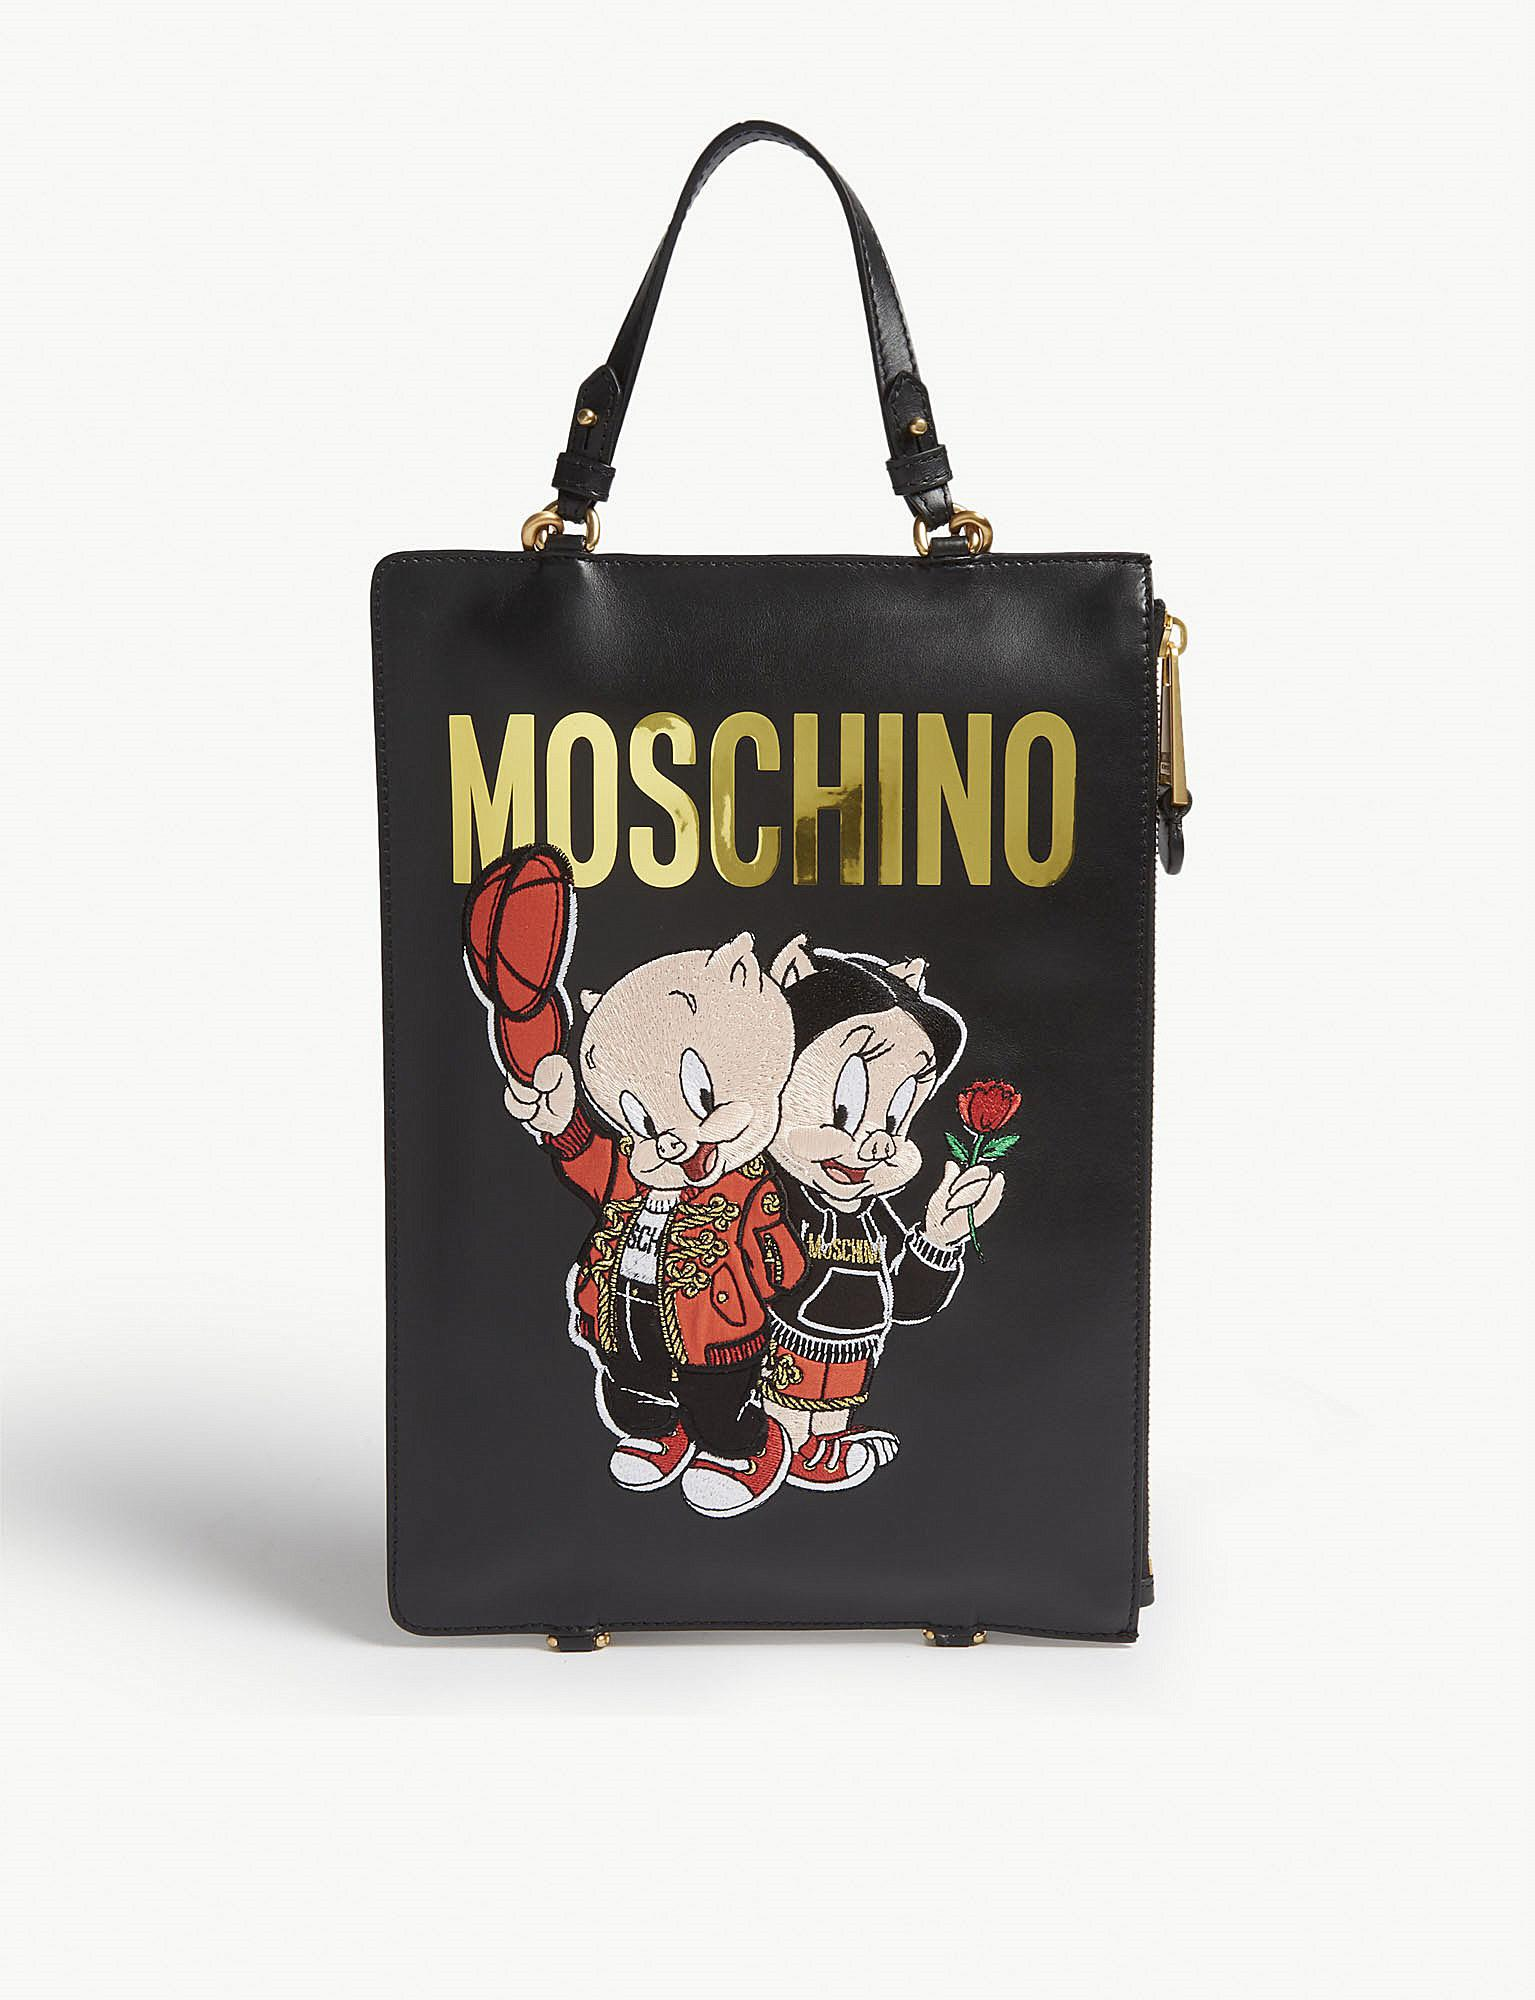 moschino-porky-pig-backpack-black-leather